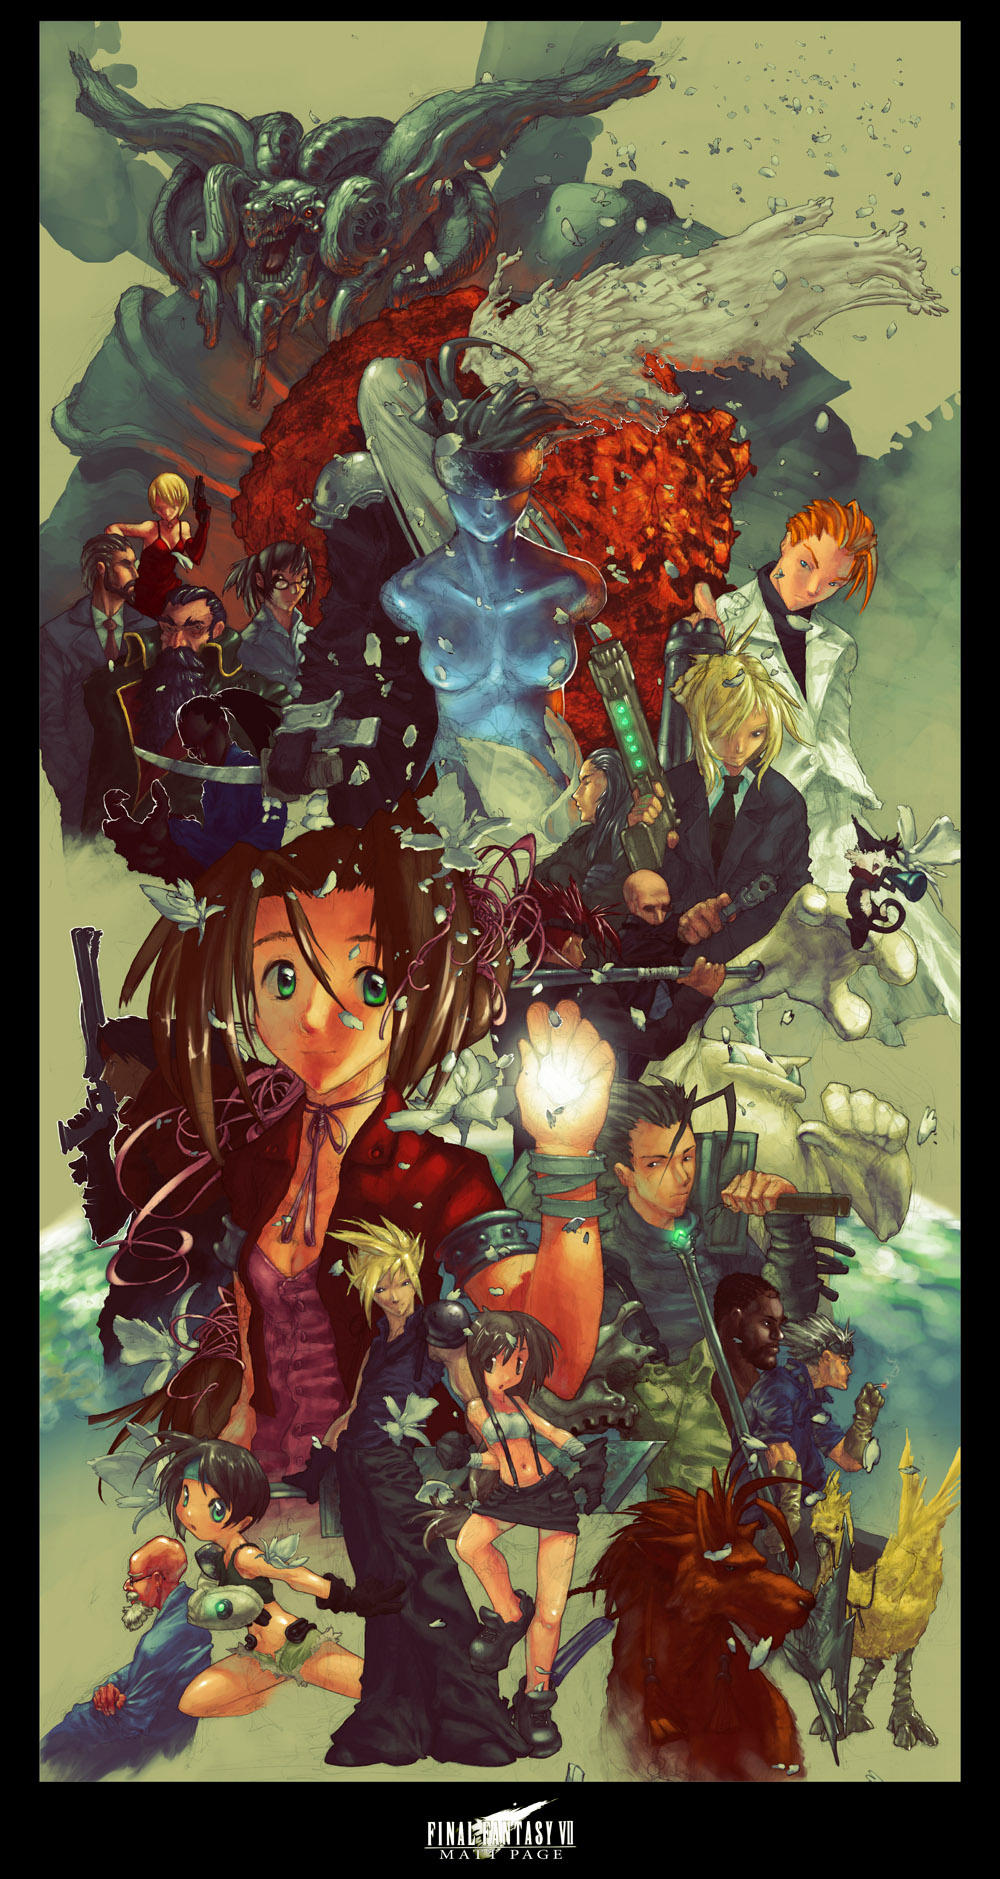 Final_Fantasy_VII_ULTIMATE_by_fallout161.jpg